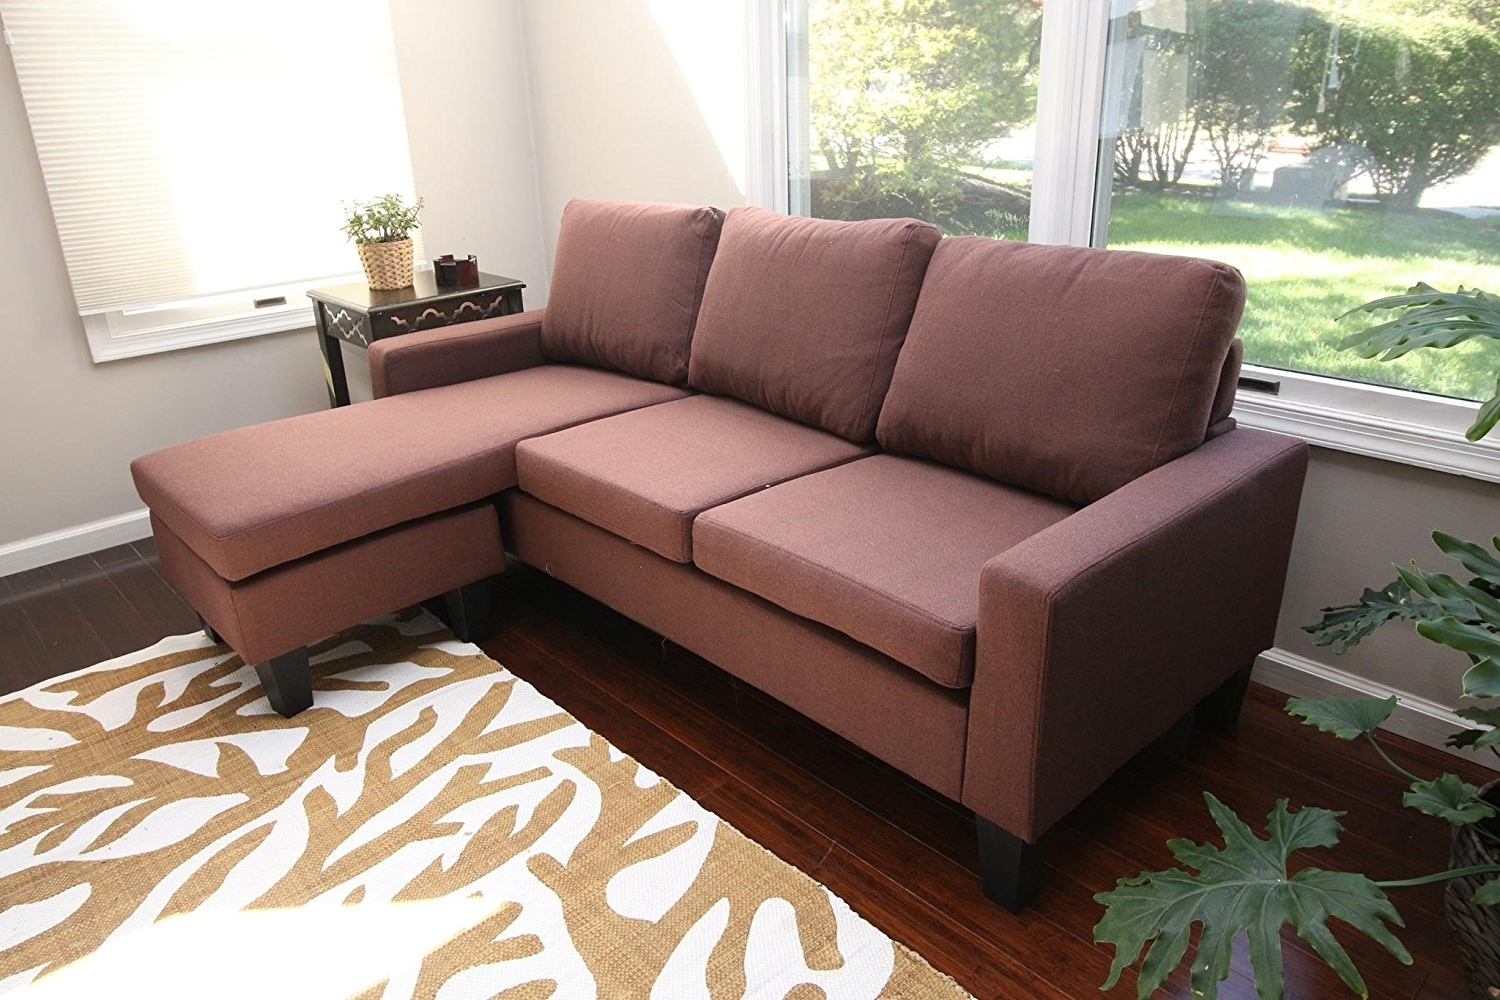 Vancouver Wa Sectional Sofas In Most Popular Furniture : Corner Couch And Swivel Chair Sectional Couch (View 11 of 15)